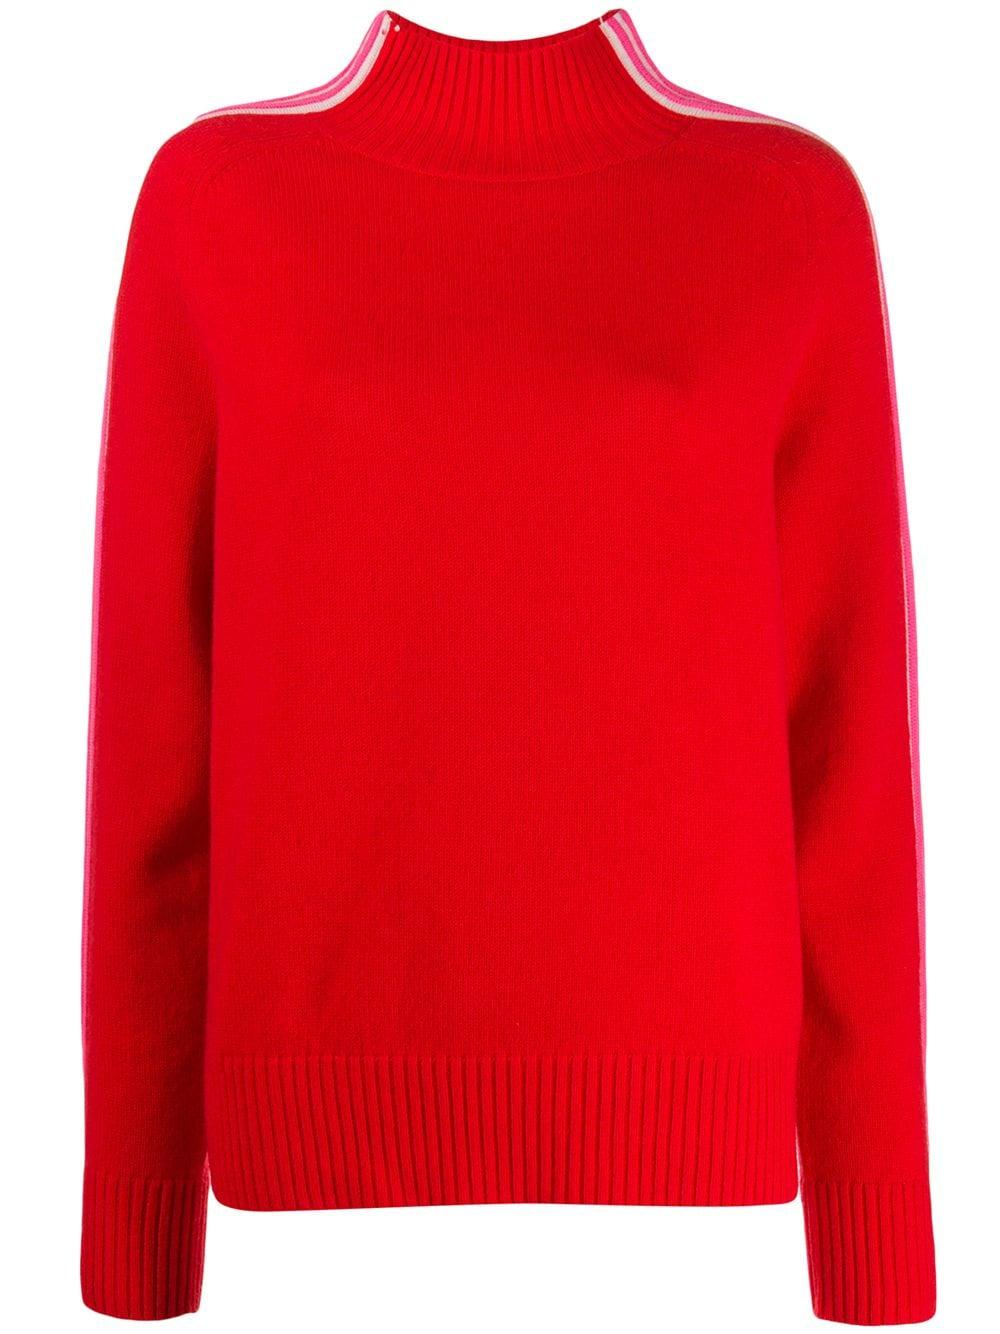 Ripple Turtleneck Sweater